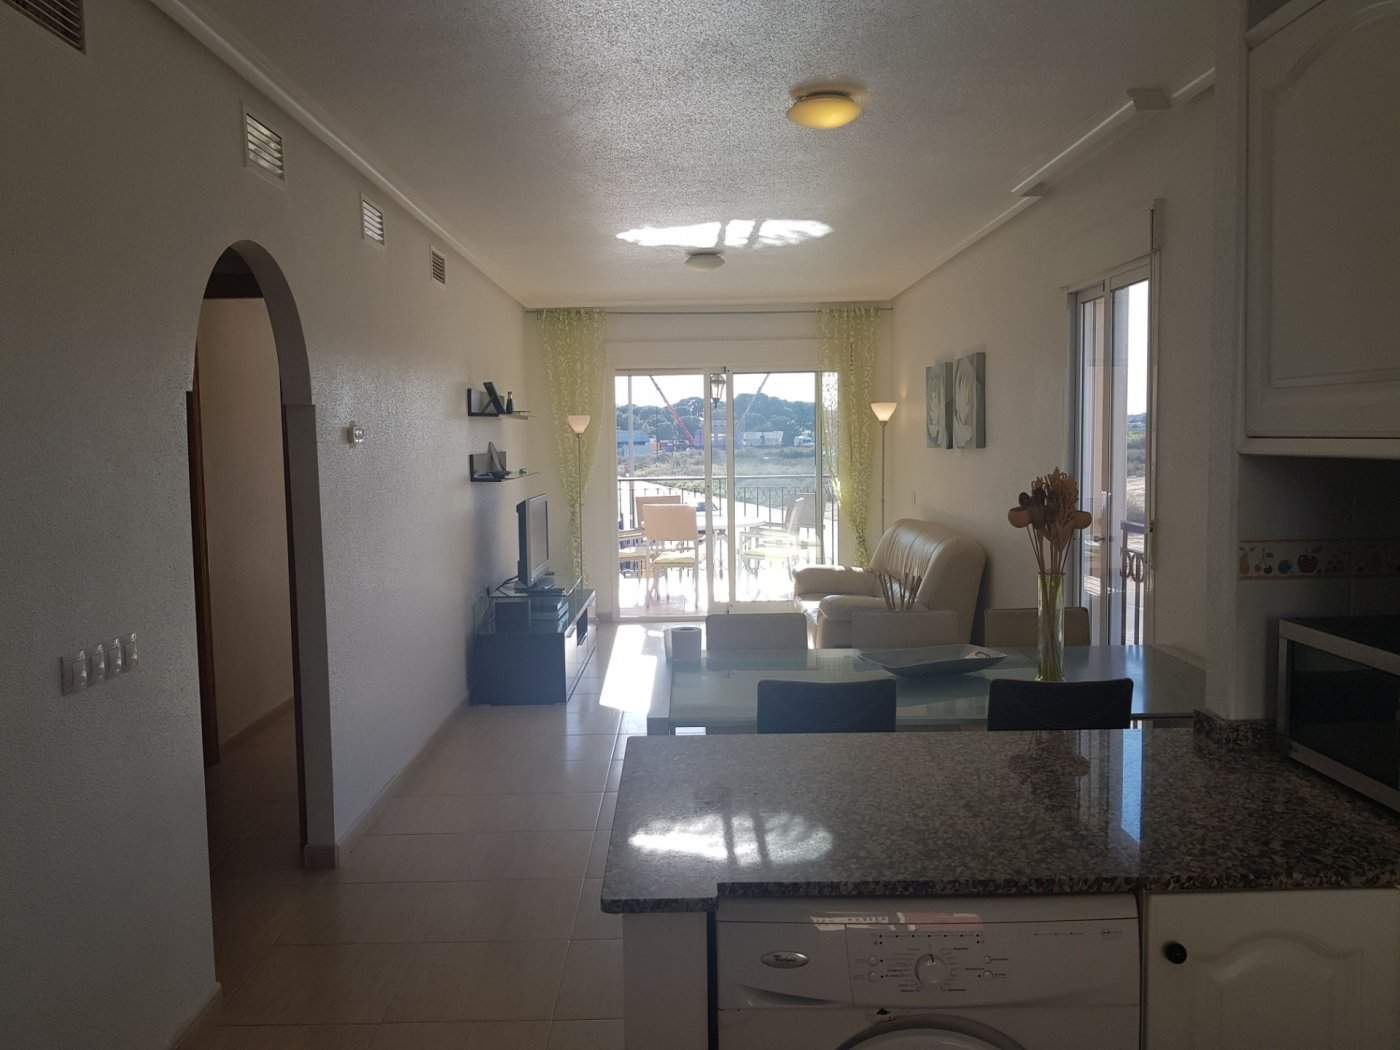 Image 3 Apartment ref 3265-03205 for sale in San Blas Spain - Quality Homes Costa Cálida